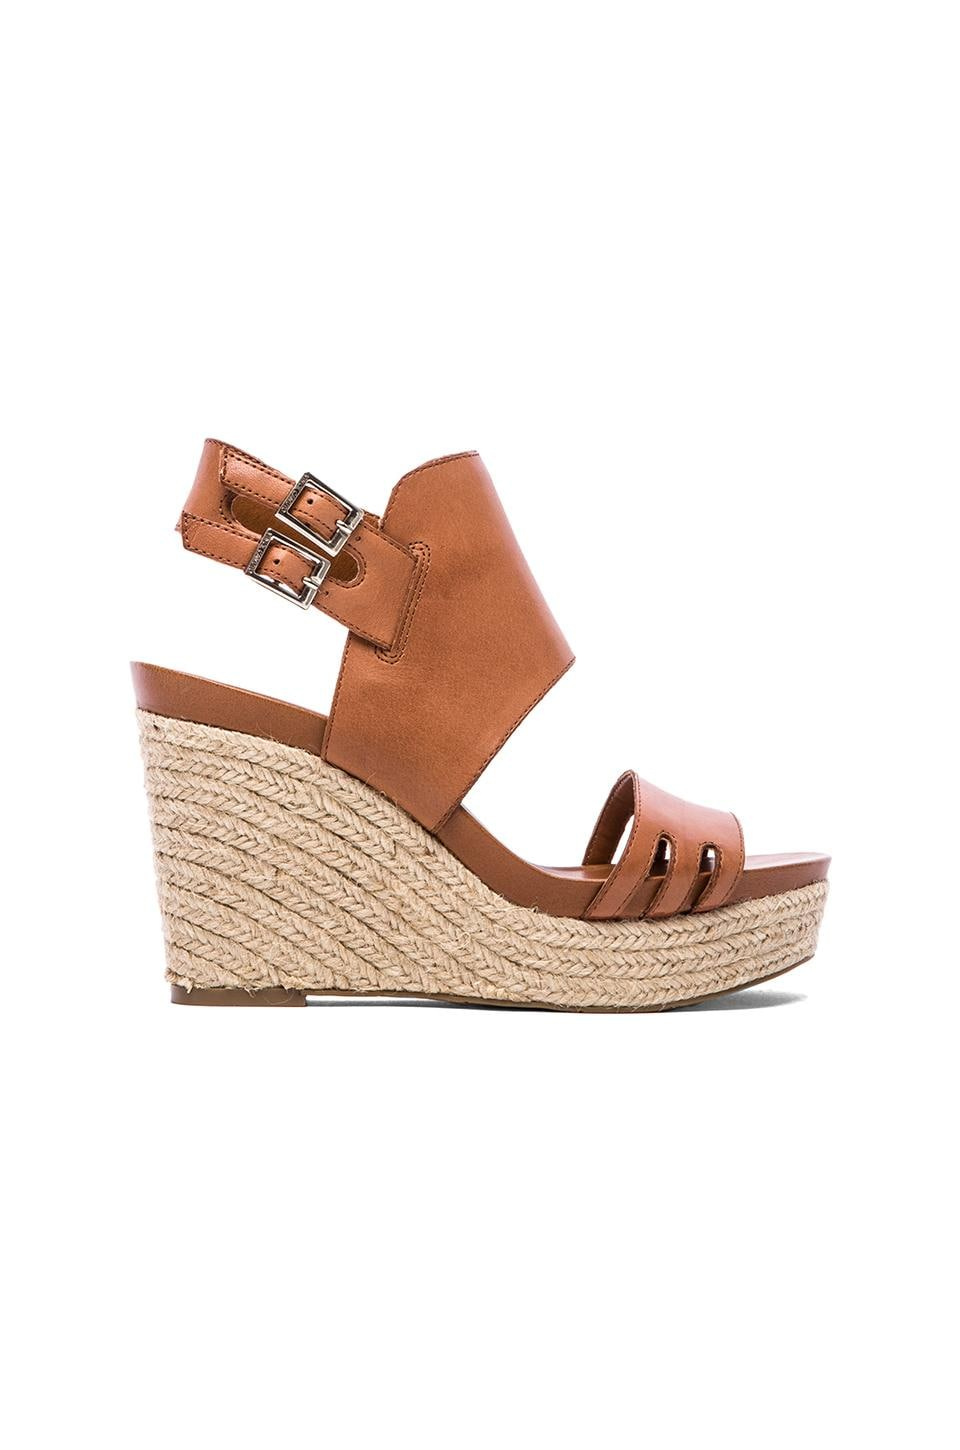 Vince Camuto Temperton Wedge in Fudge/Natural